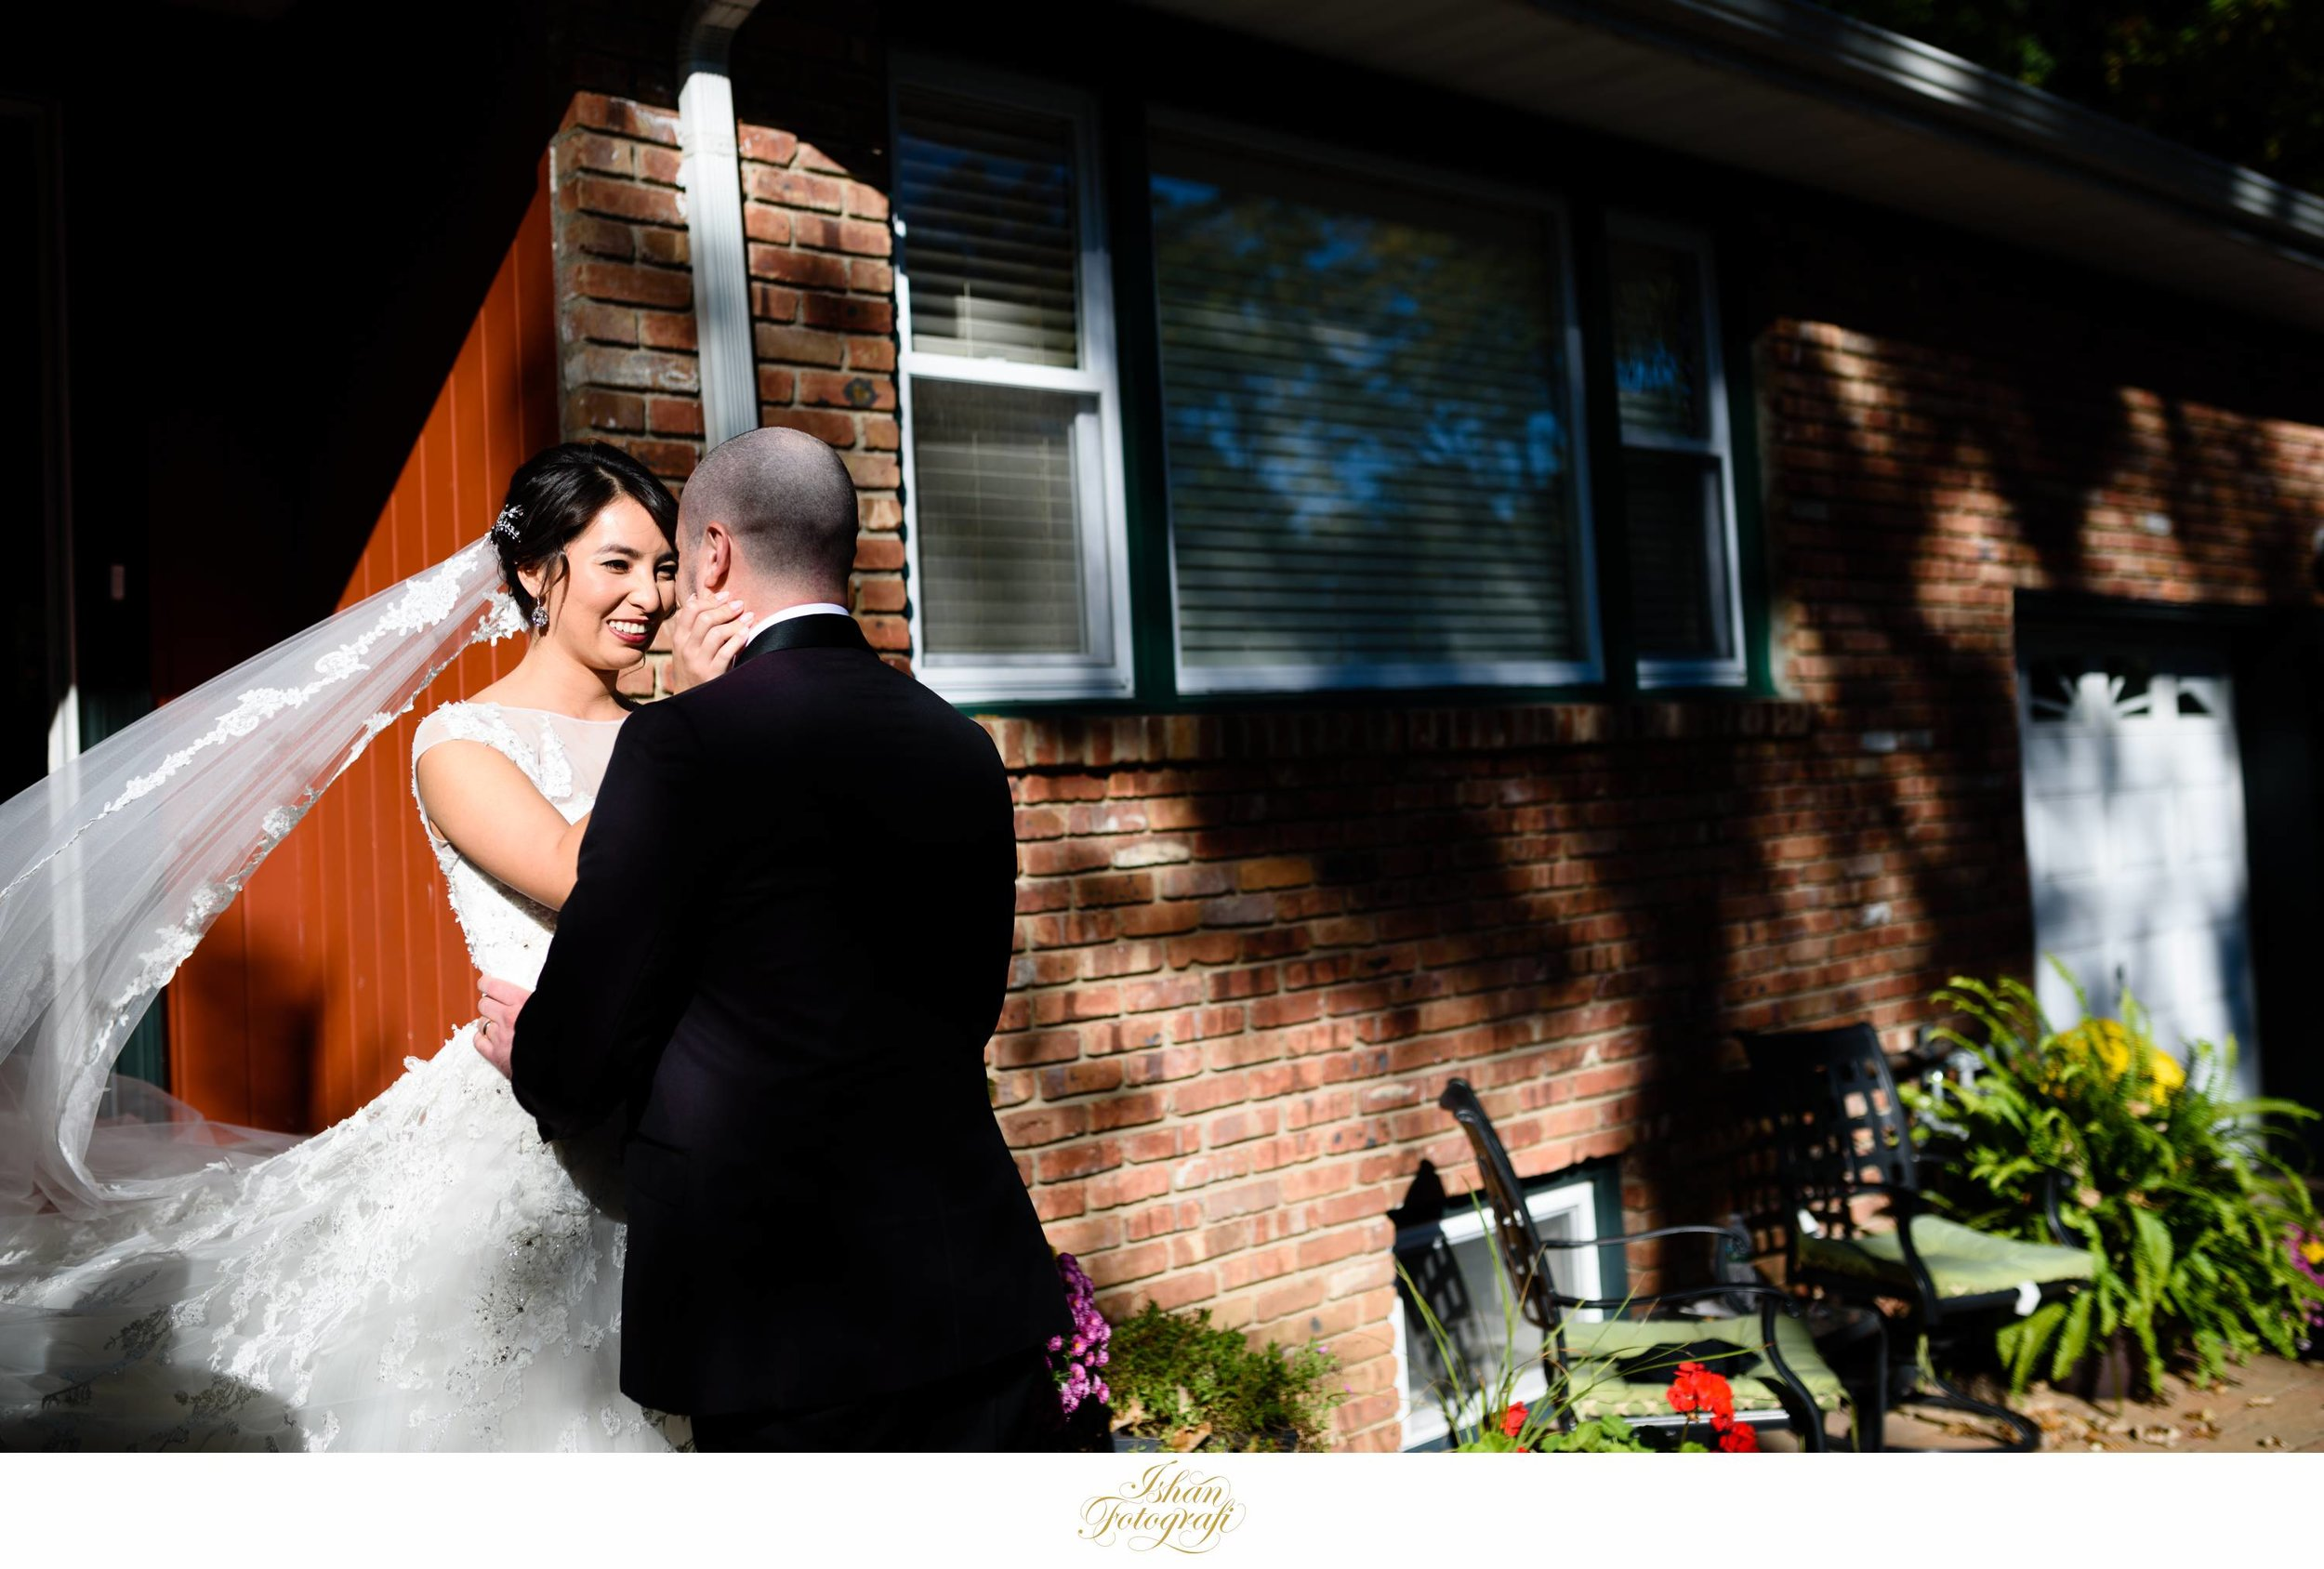 We absolutely adore this moment between our bride and groom during their first look!